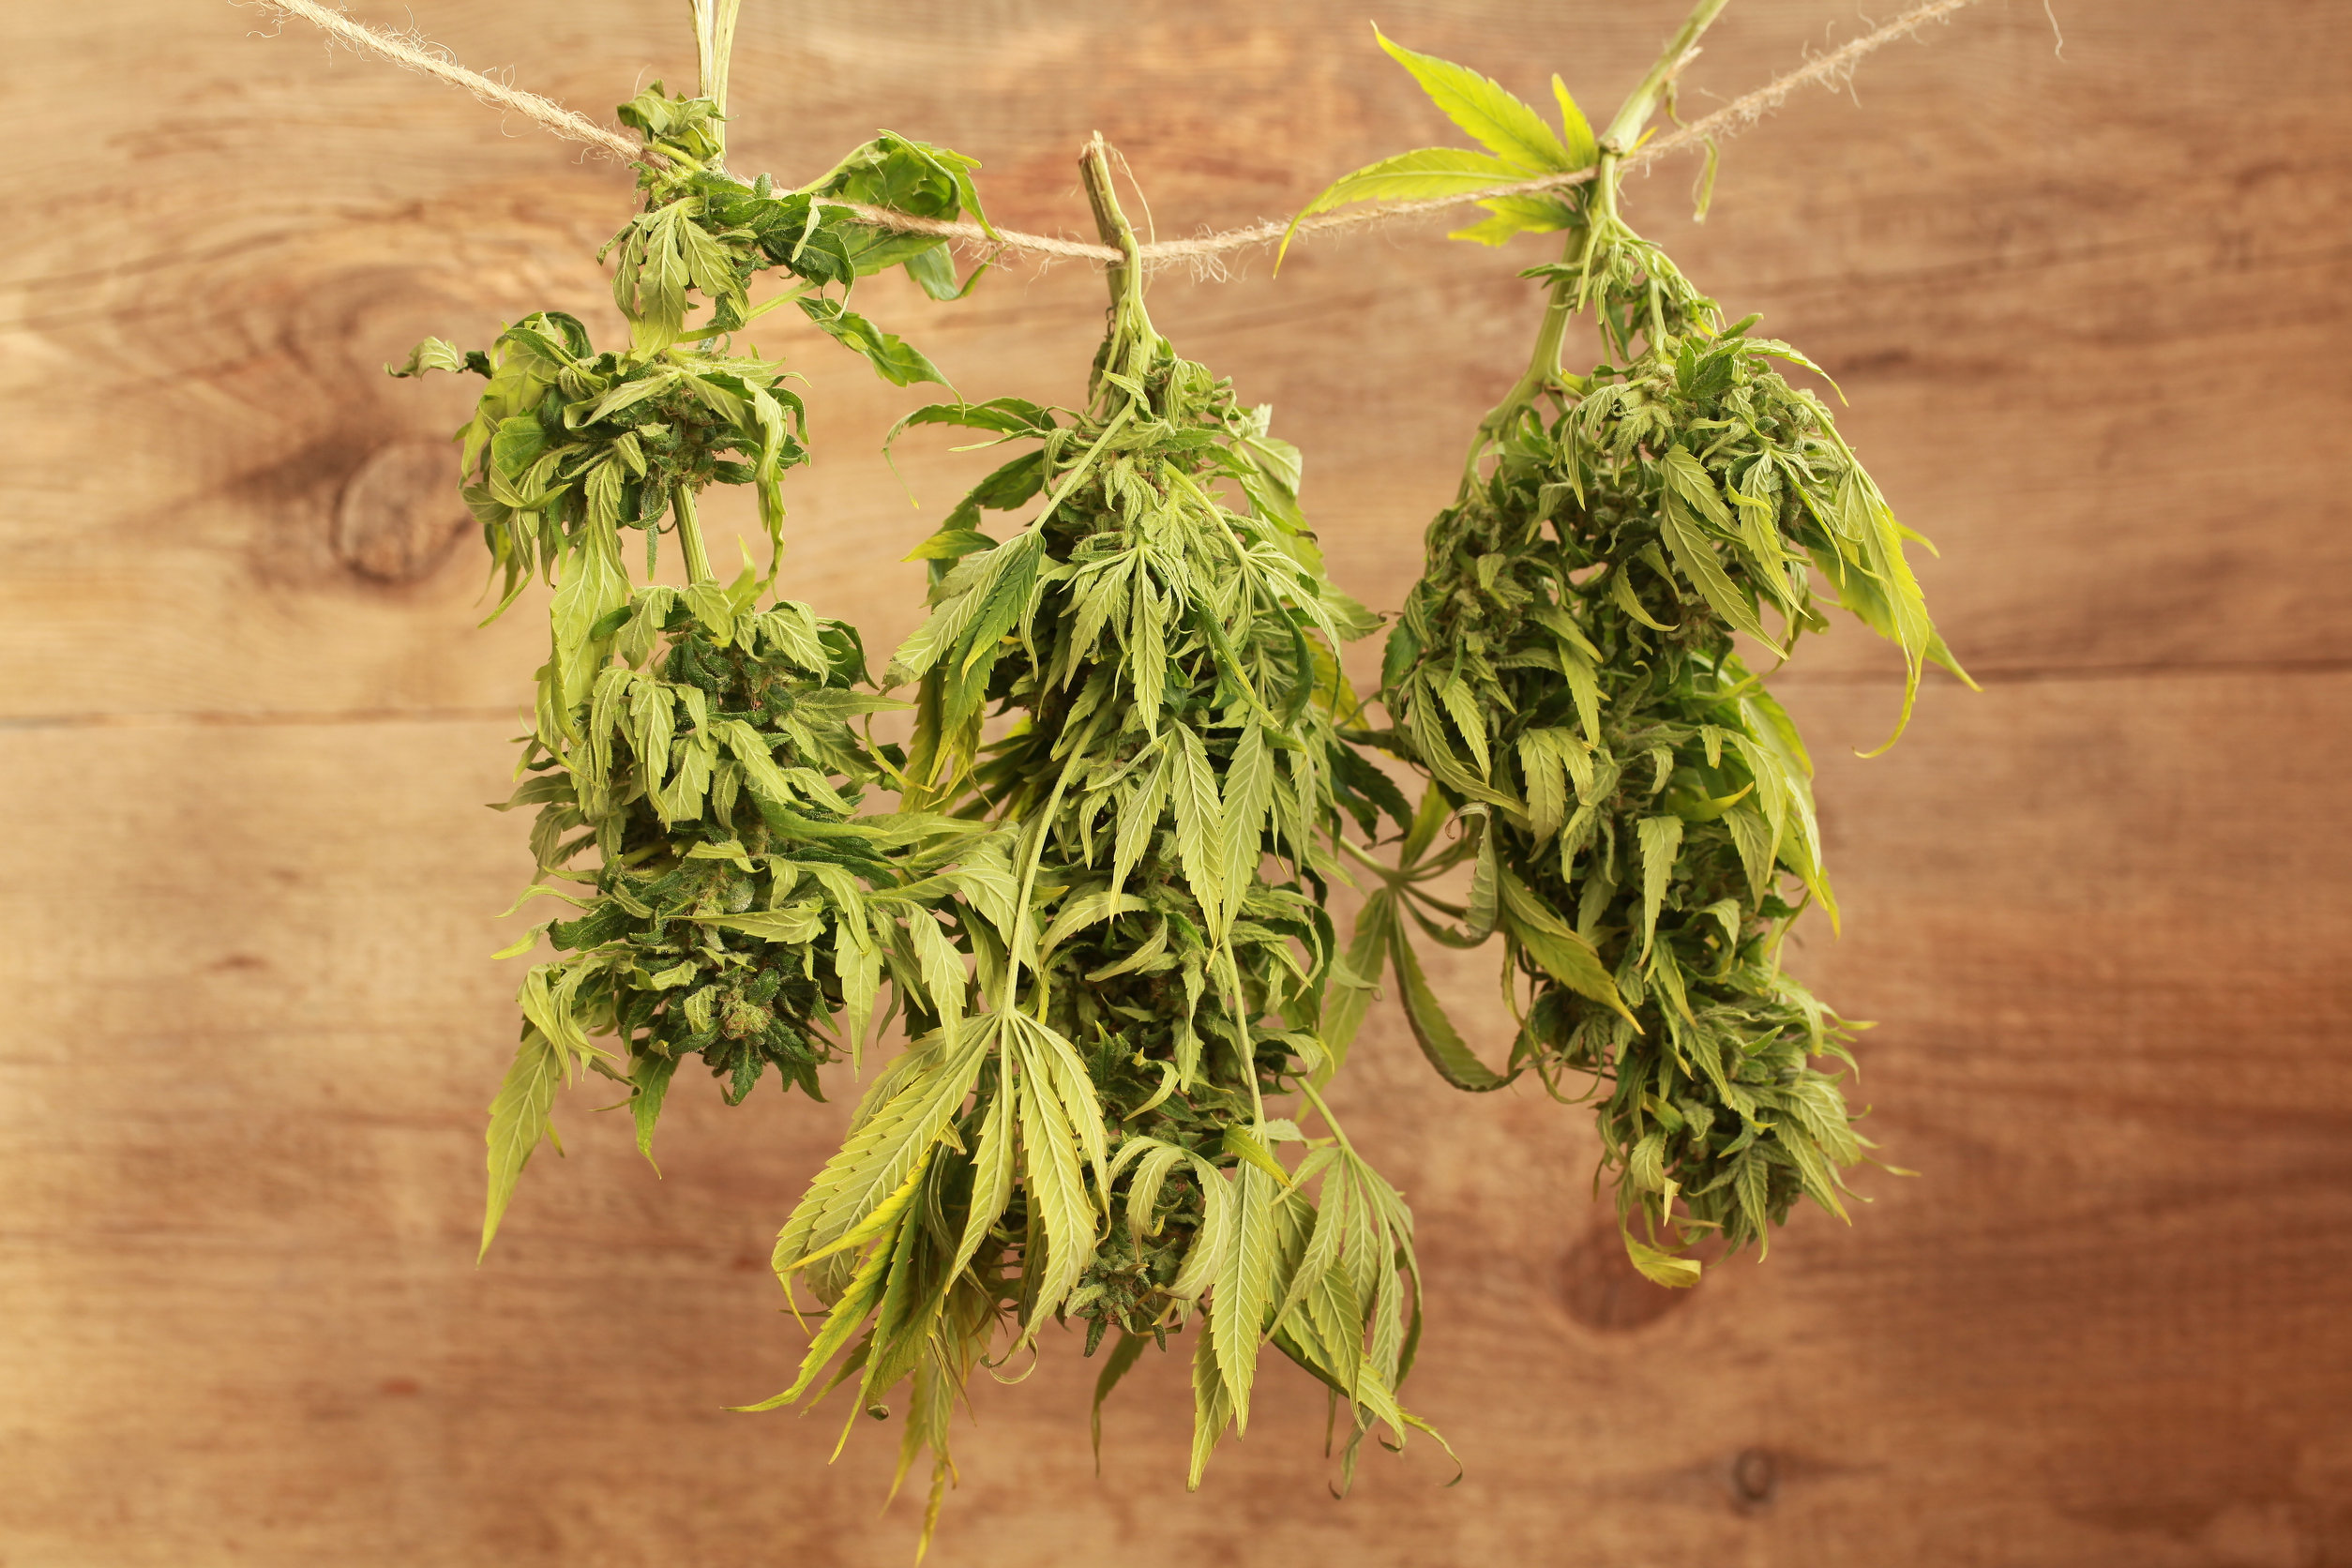 The ultimate guide to drying and curing weed